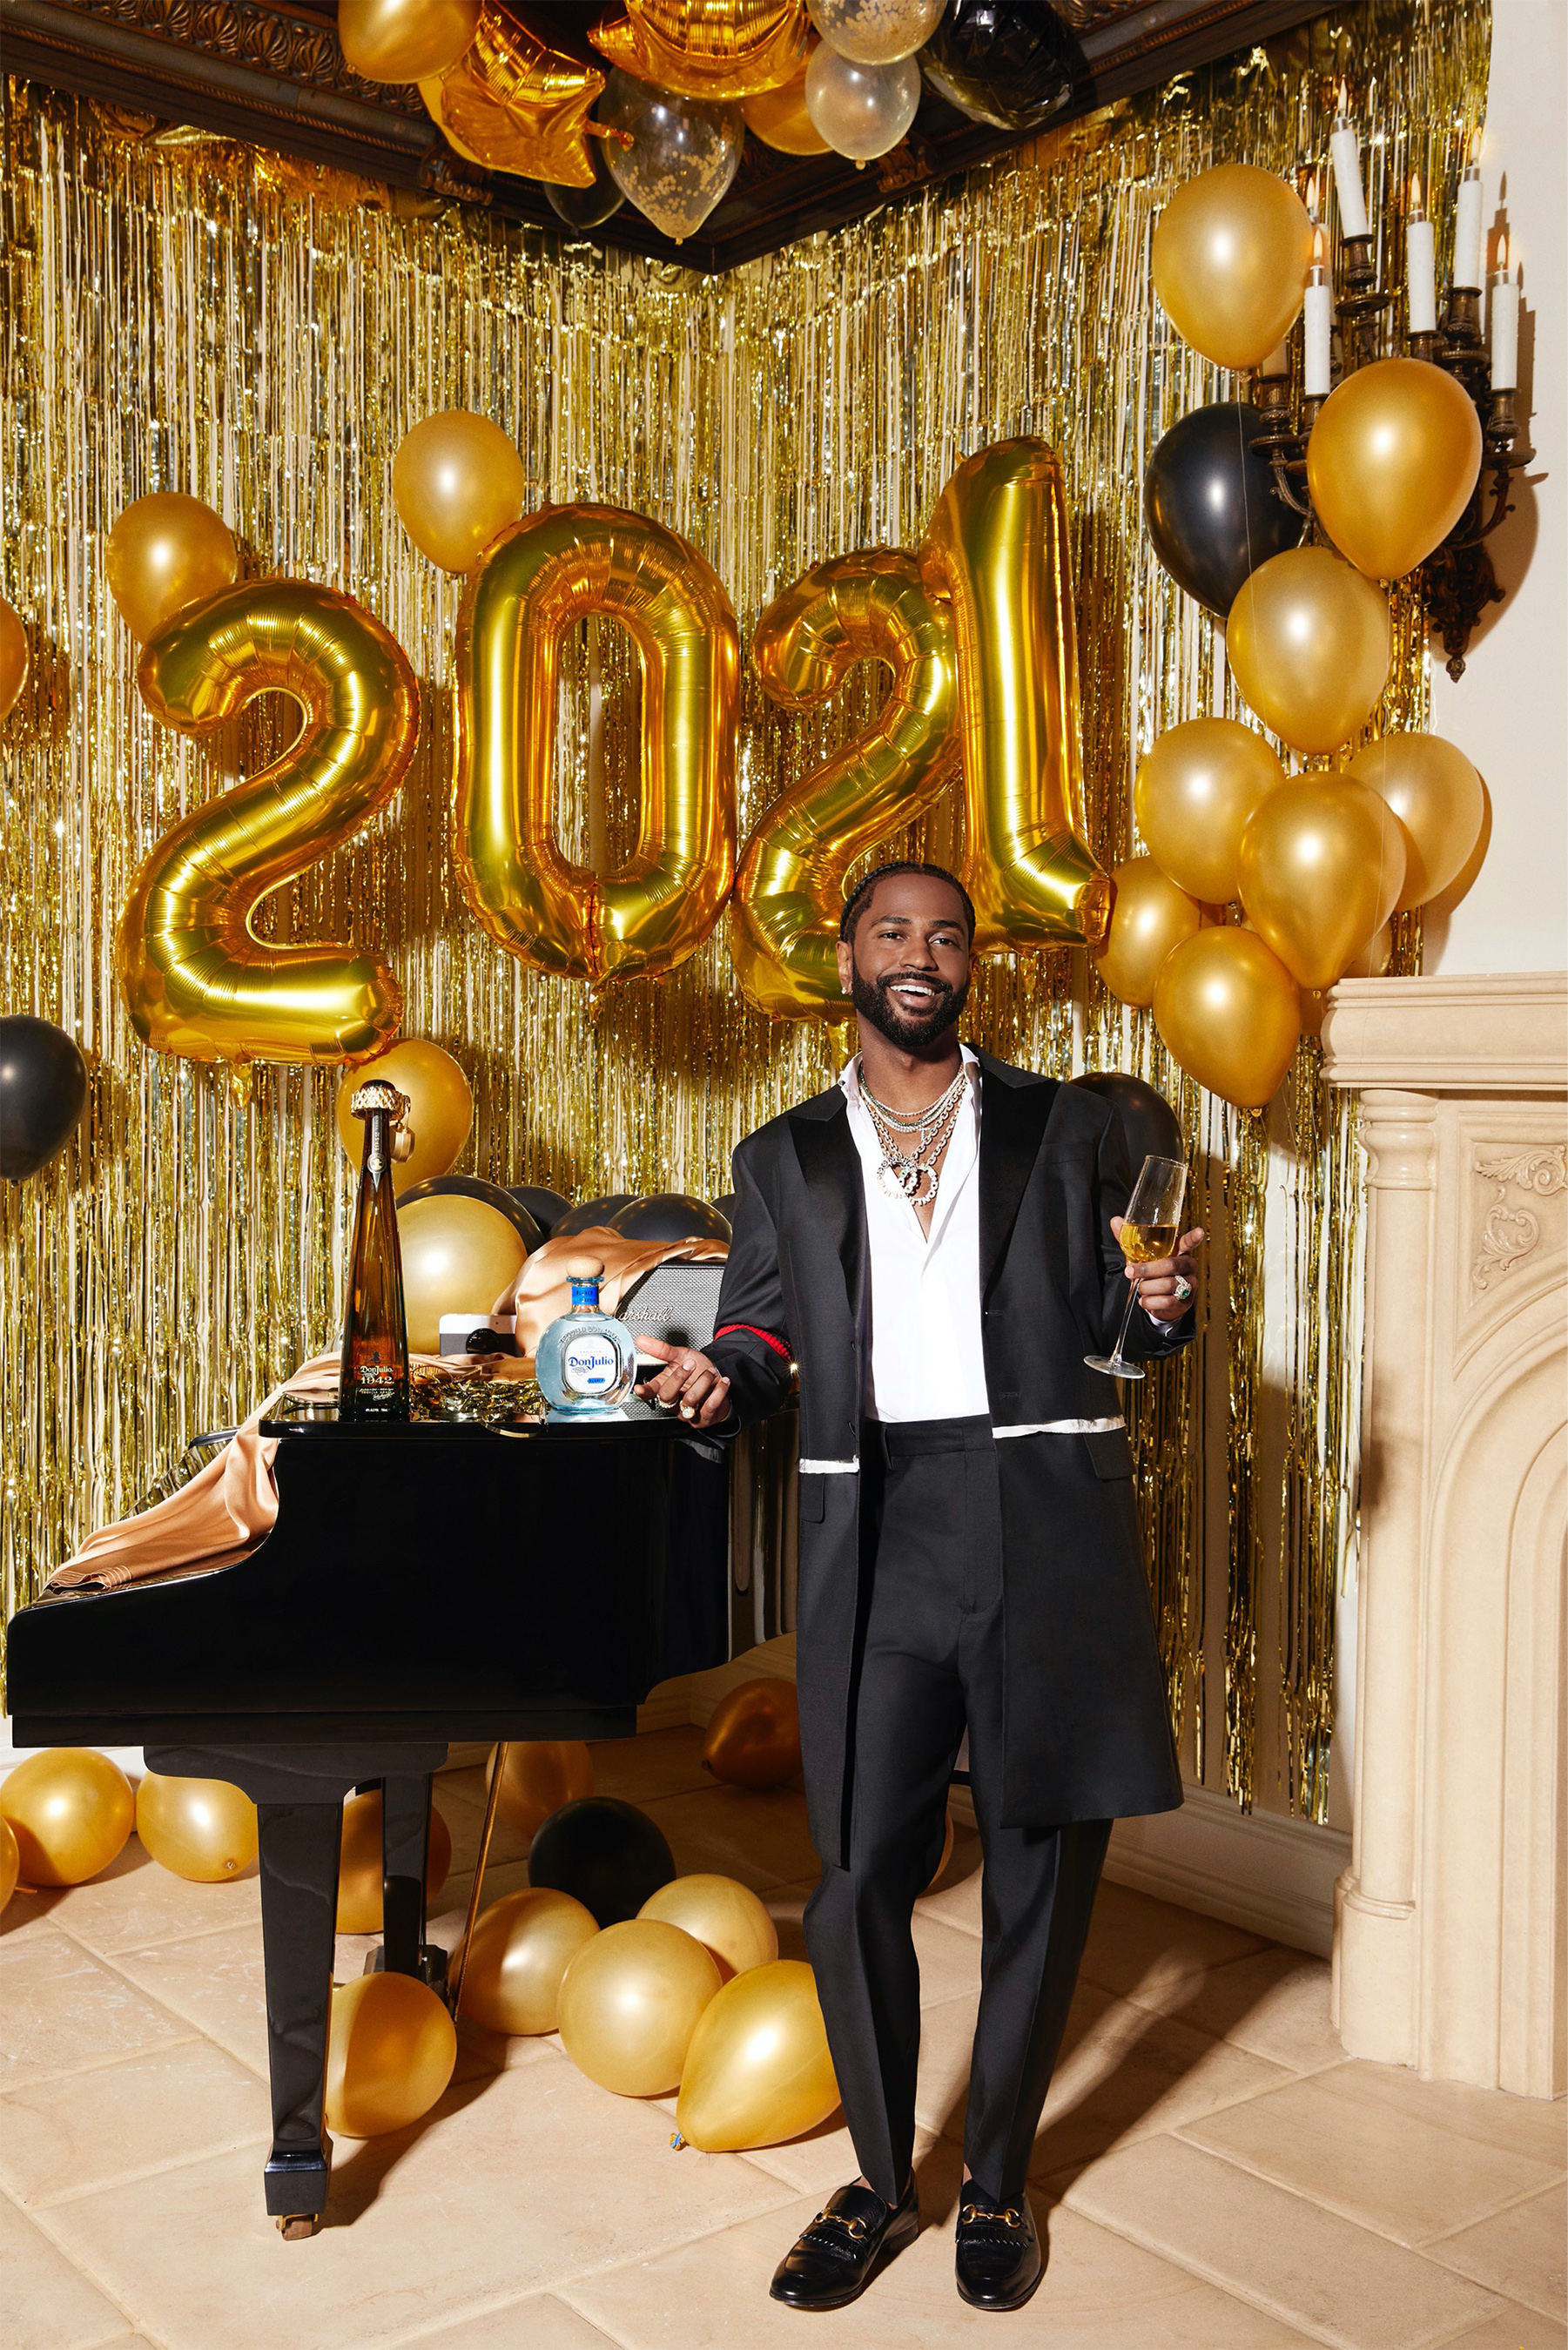 Big Sean is celebrating New Year's Eve with Tequila Don Julio to show everyone what it means to live the Don Life to ring in 2021.